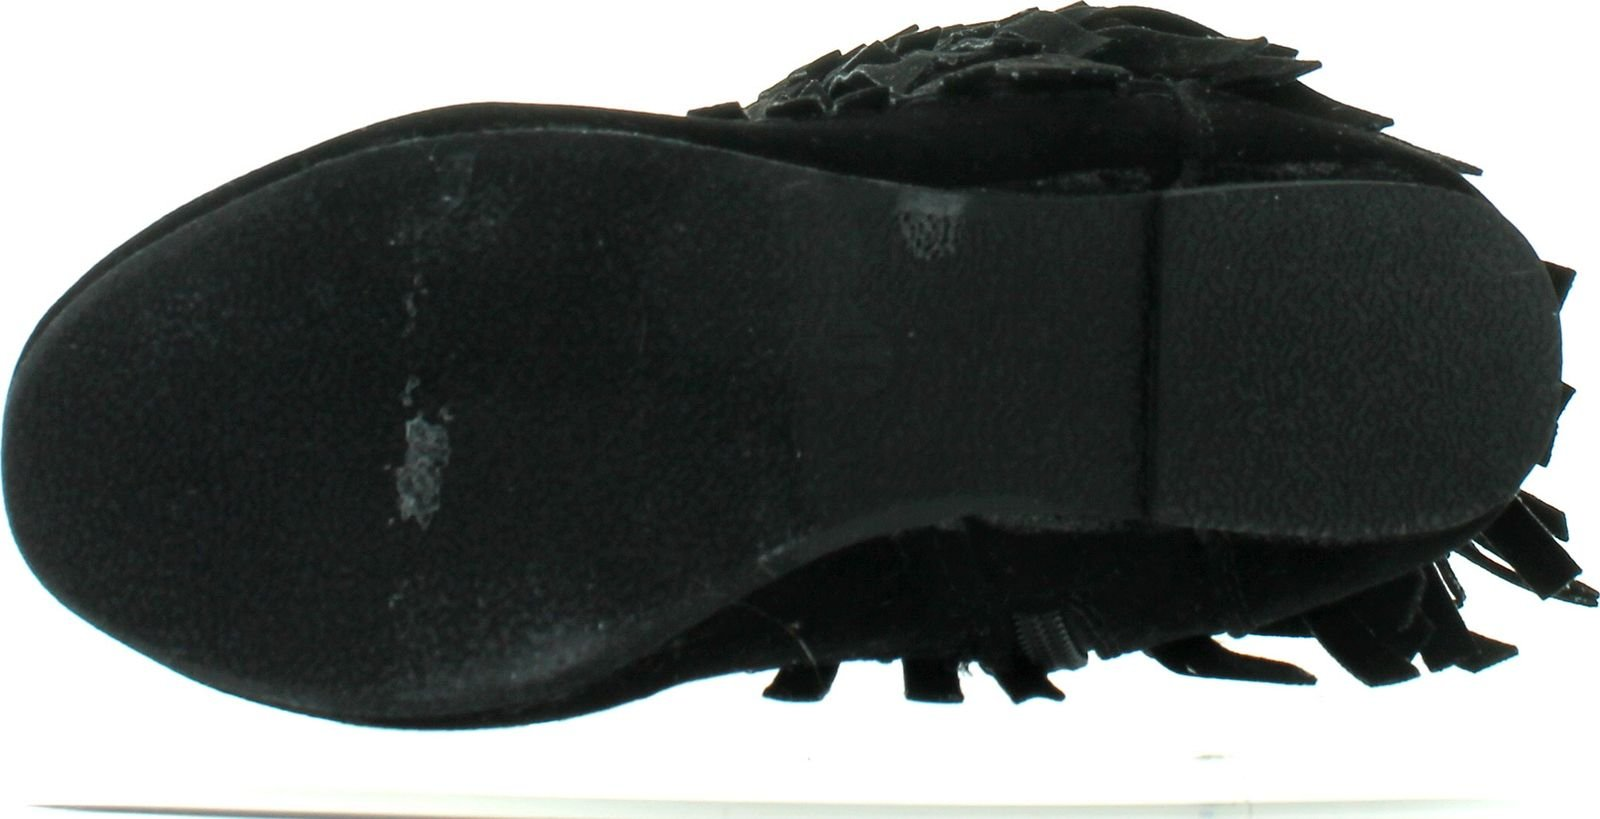 I LOVE KIDS Ava-18K Children's 3-Layers Fringe Moccasin Style Mid-Calf Boots,Black,13 by I LOVE KIDS (Image #4)